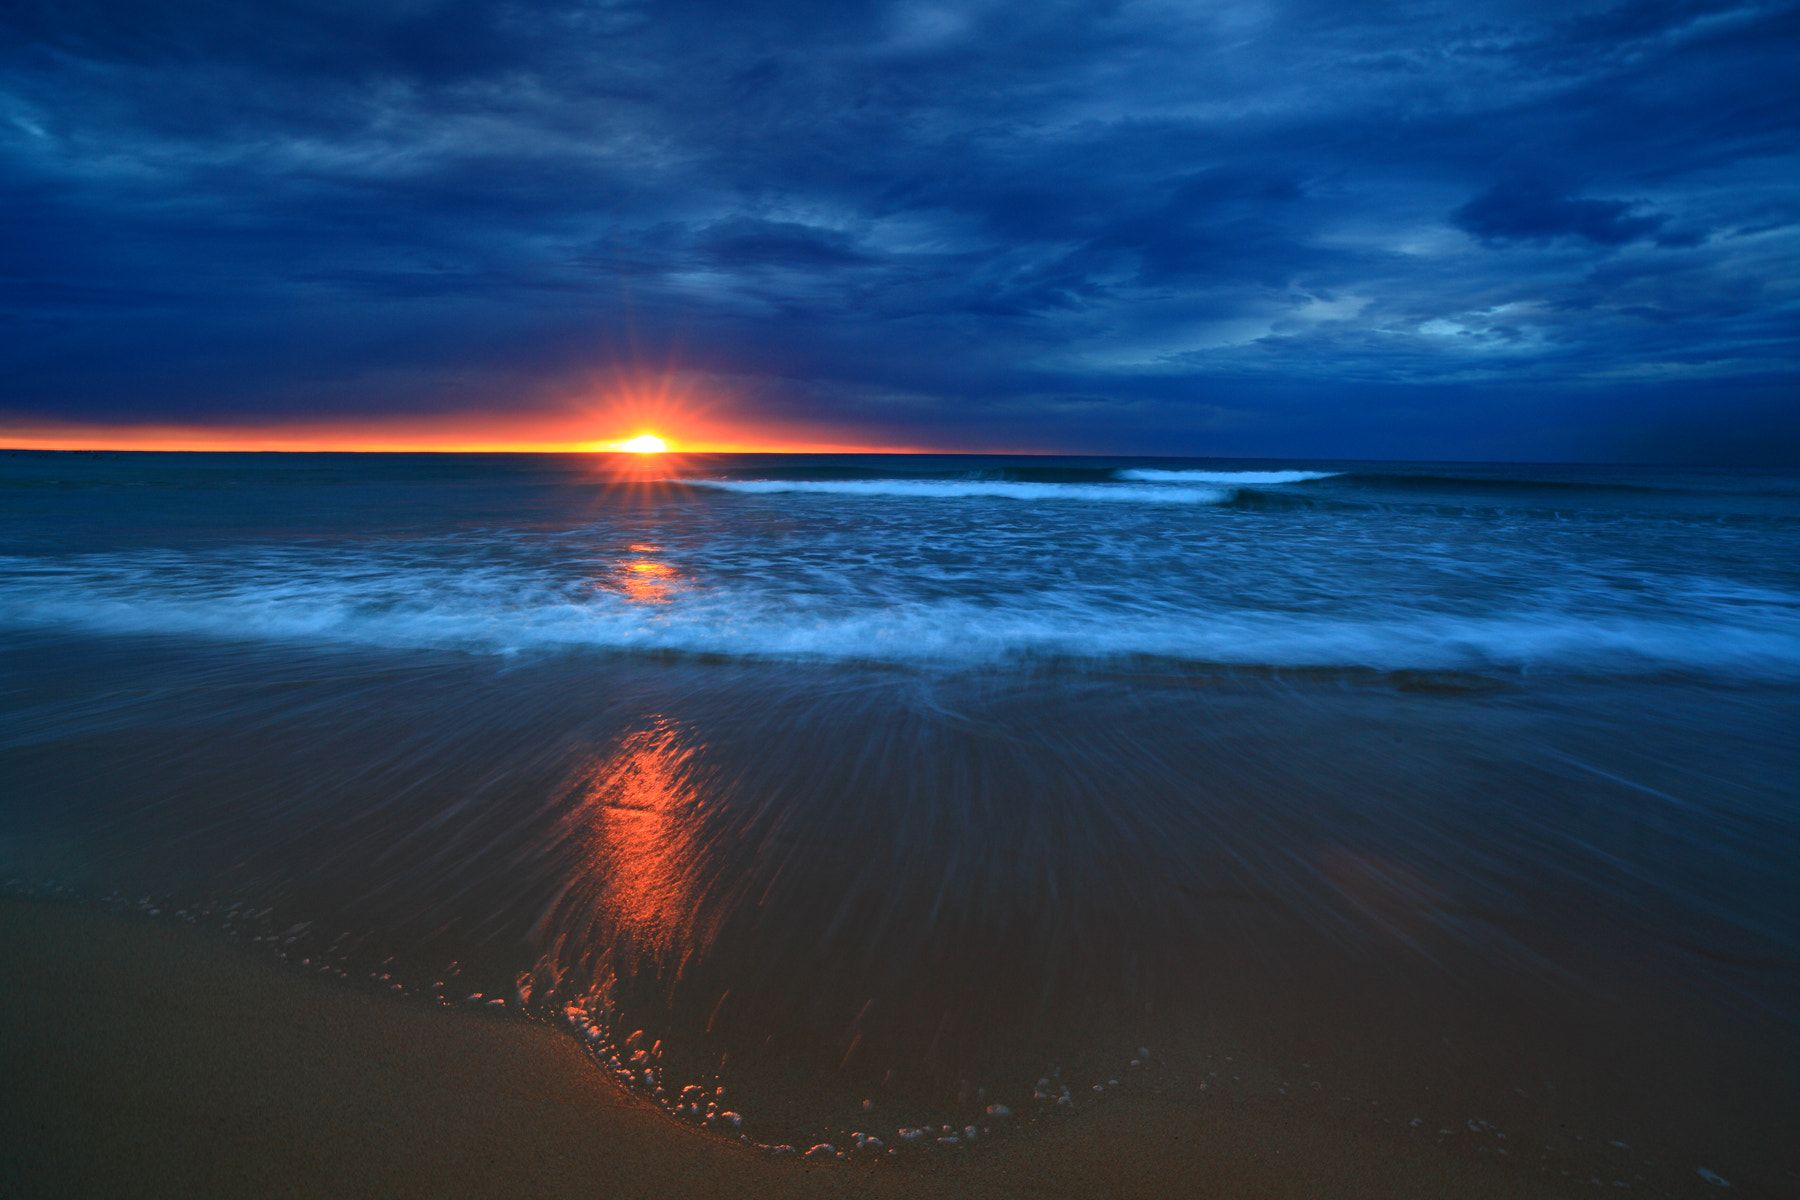 Photograph Light Washed Upon the Shore by rob woodward on 500px